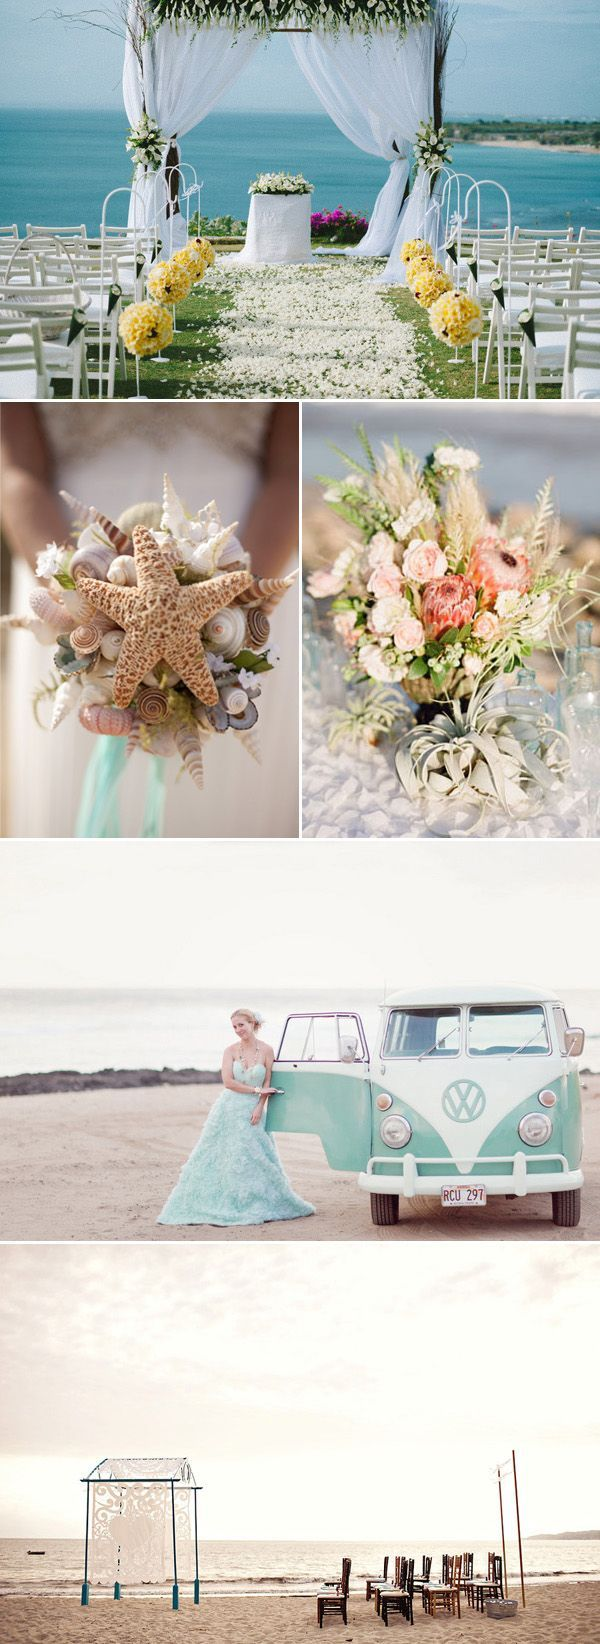 23 Romantic Beach Themed Wedding Ideas | Romantic beach weddings ...